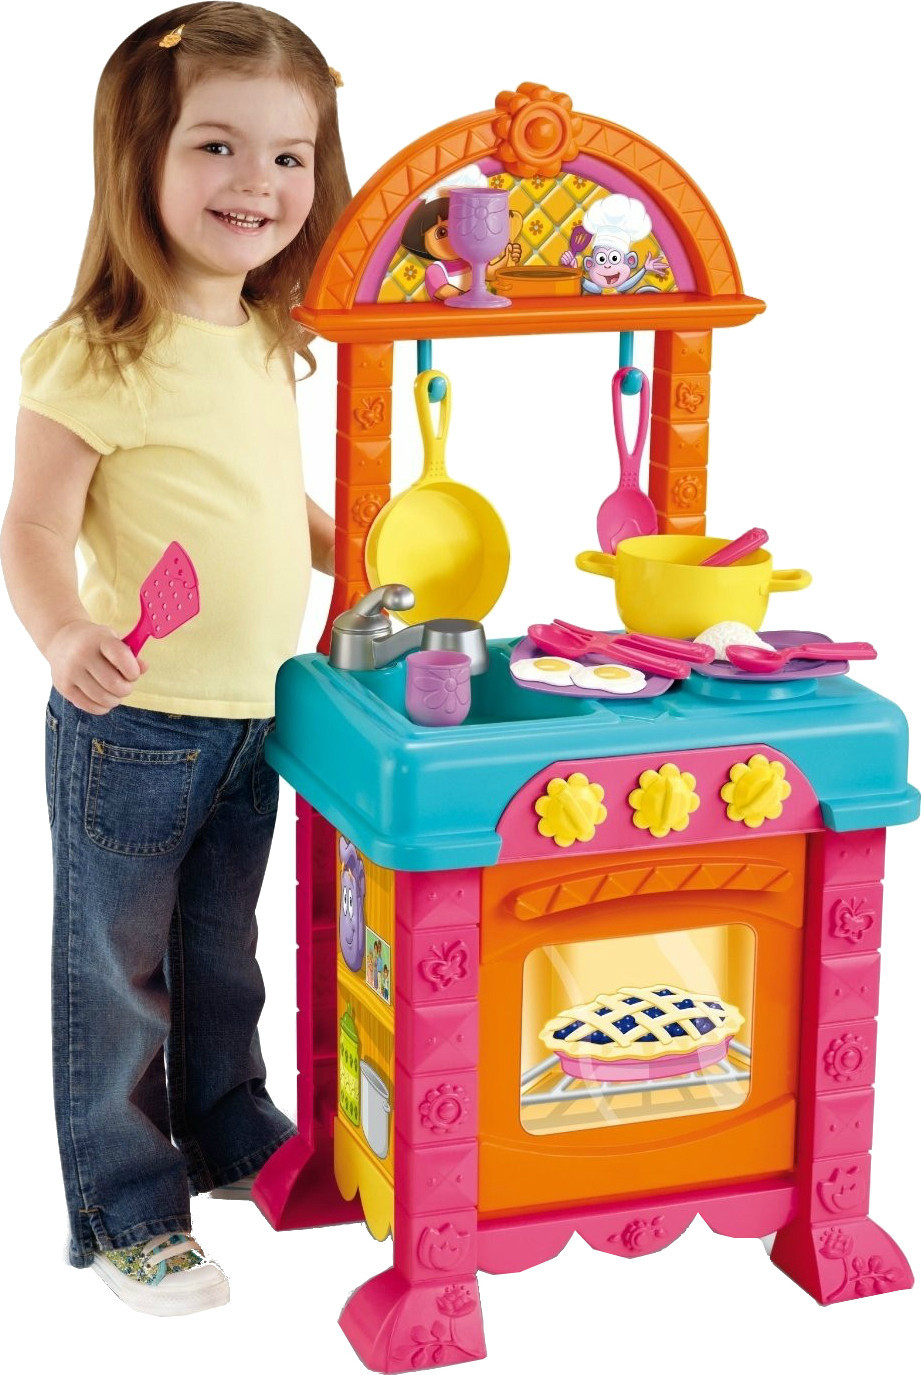 Dolls Doll Houses Price In India Buy Dolls Doll Houses Online